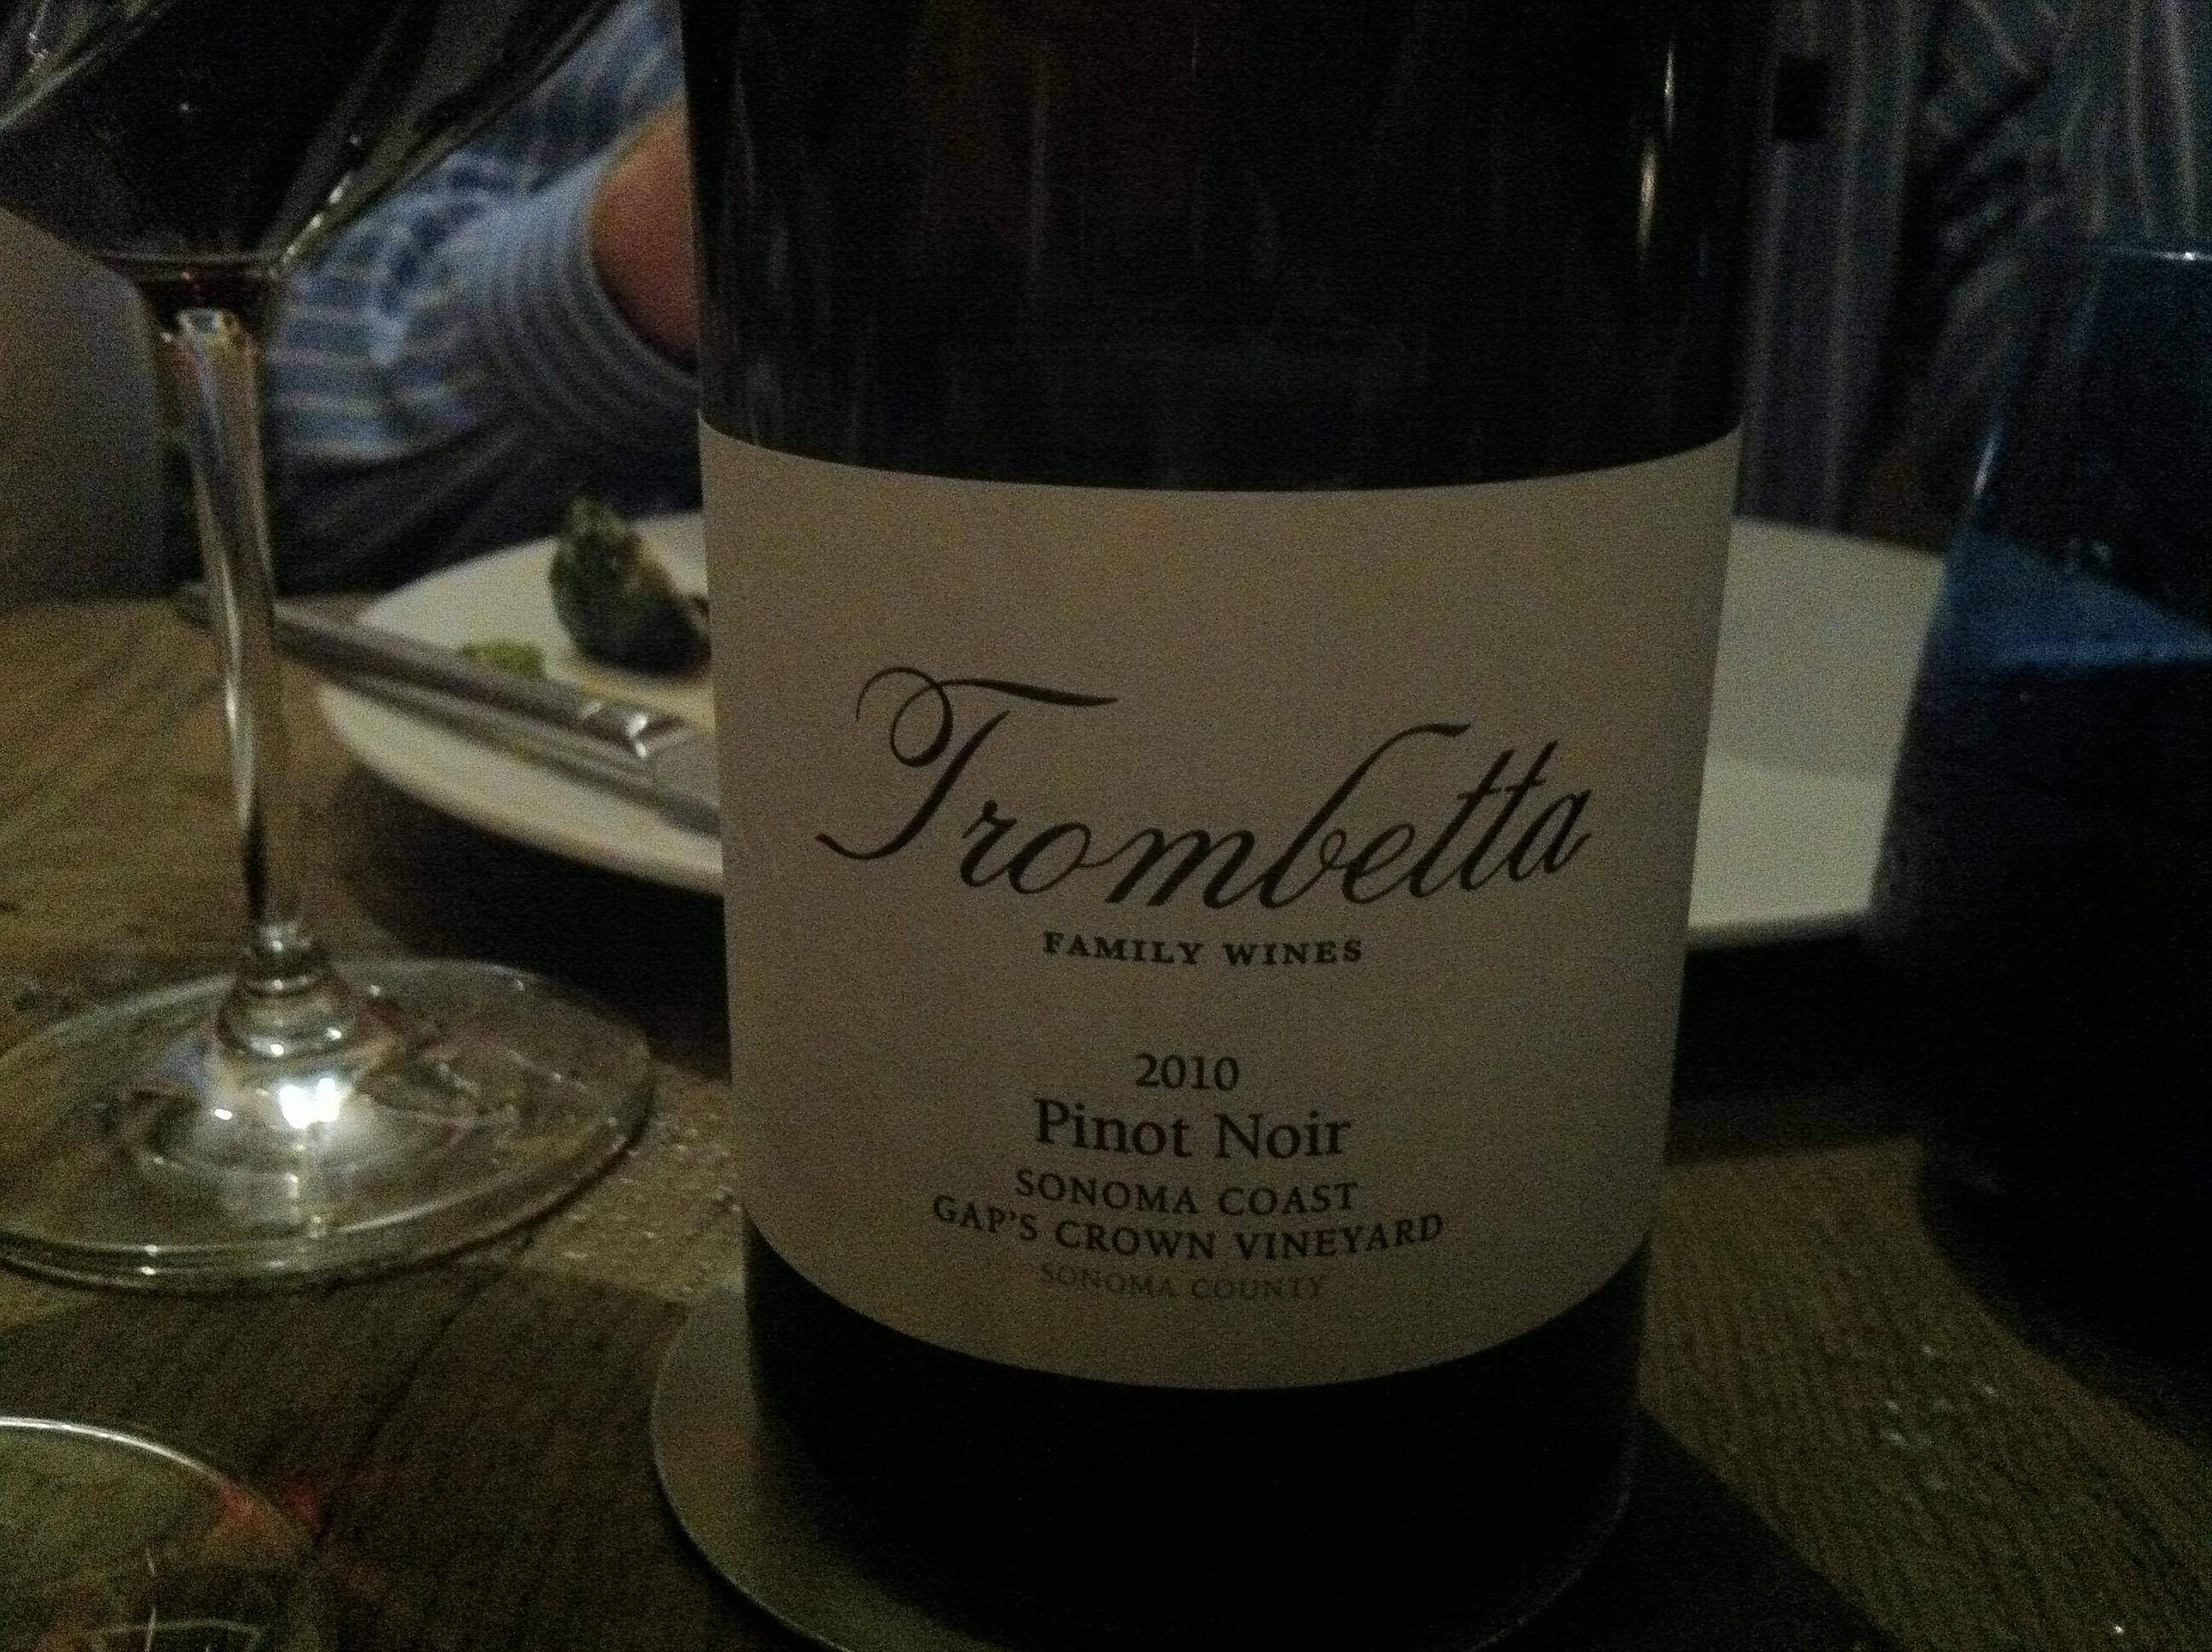 Delicious plummy and sweet with some earthy notes.  Small vineyard Italian family. 80ish at broadway Laguna beach